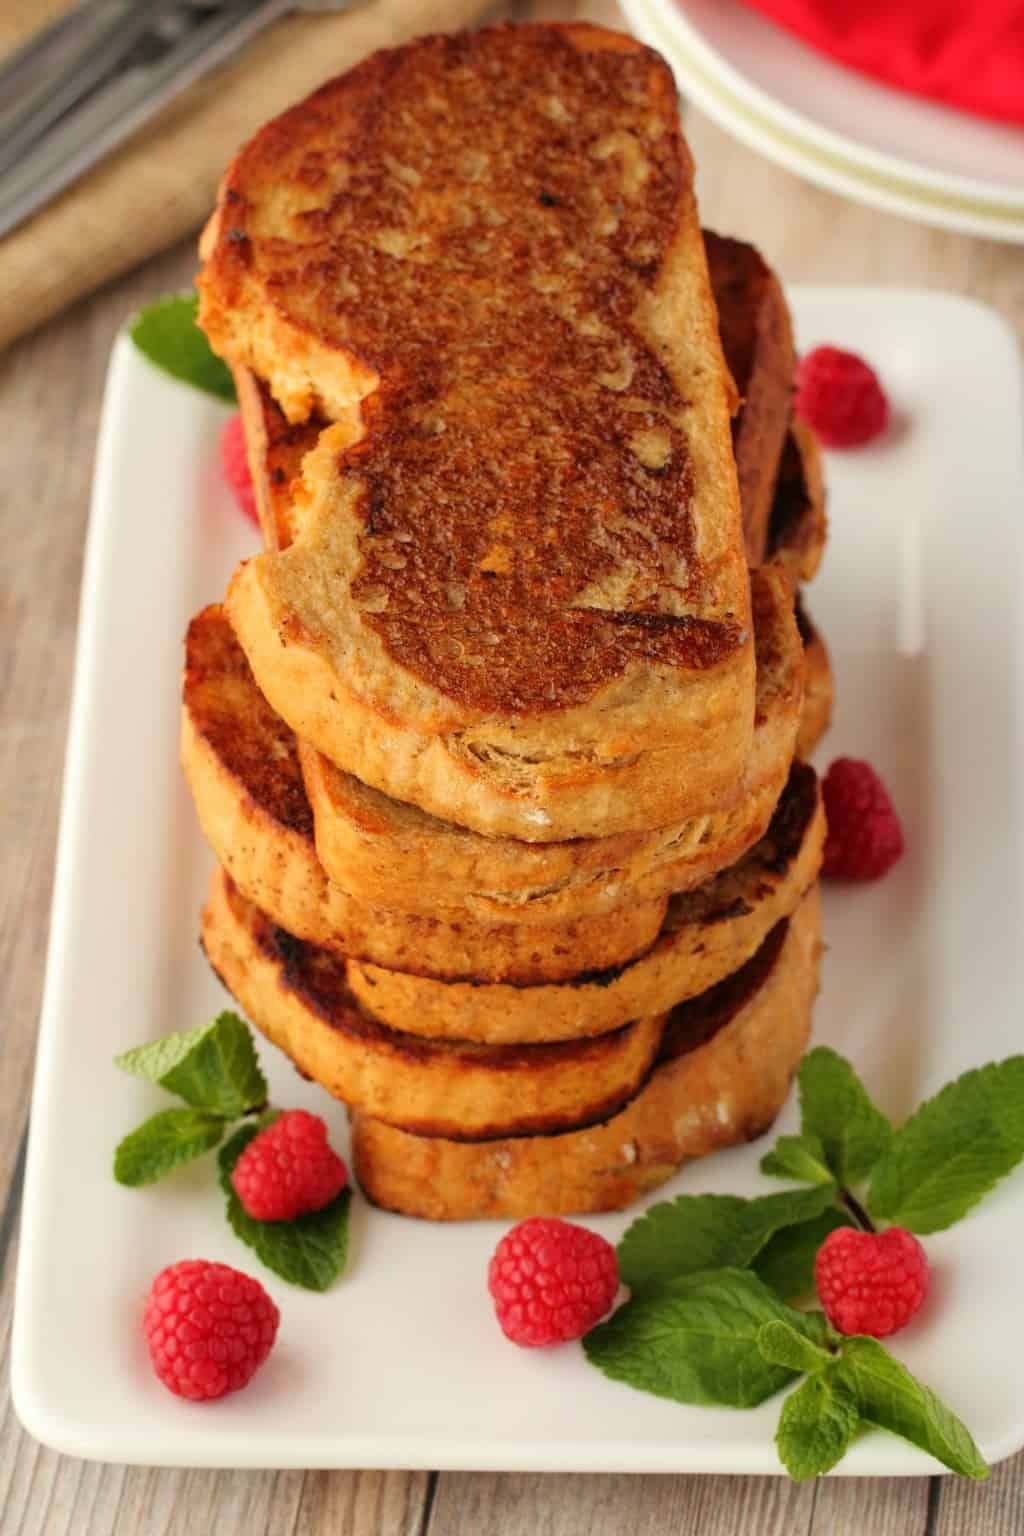 A stack of vegan french toast surrounded by mint leaves and raspberries, on a white plate.